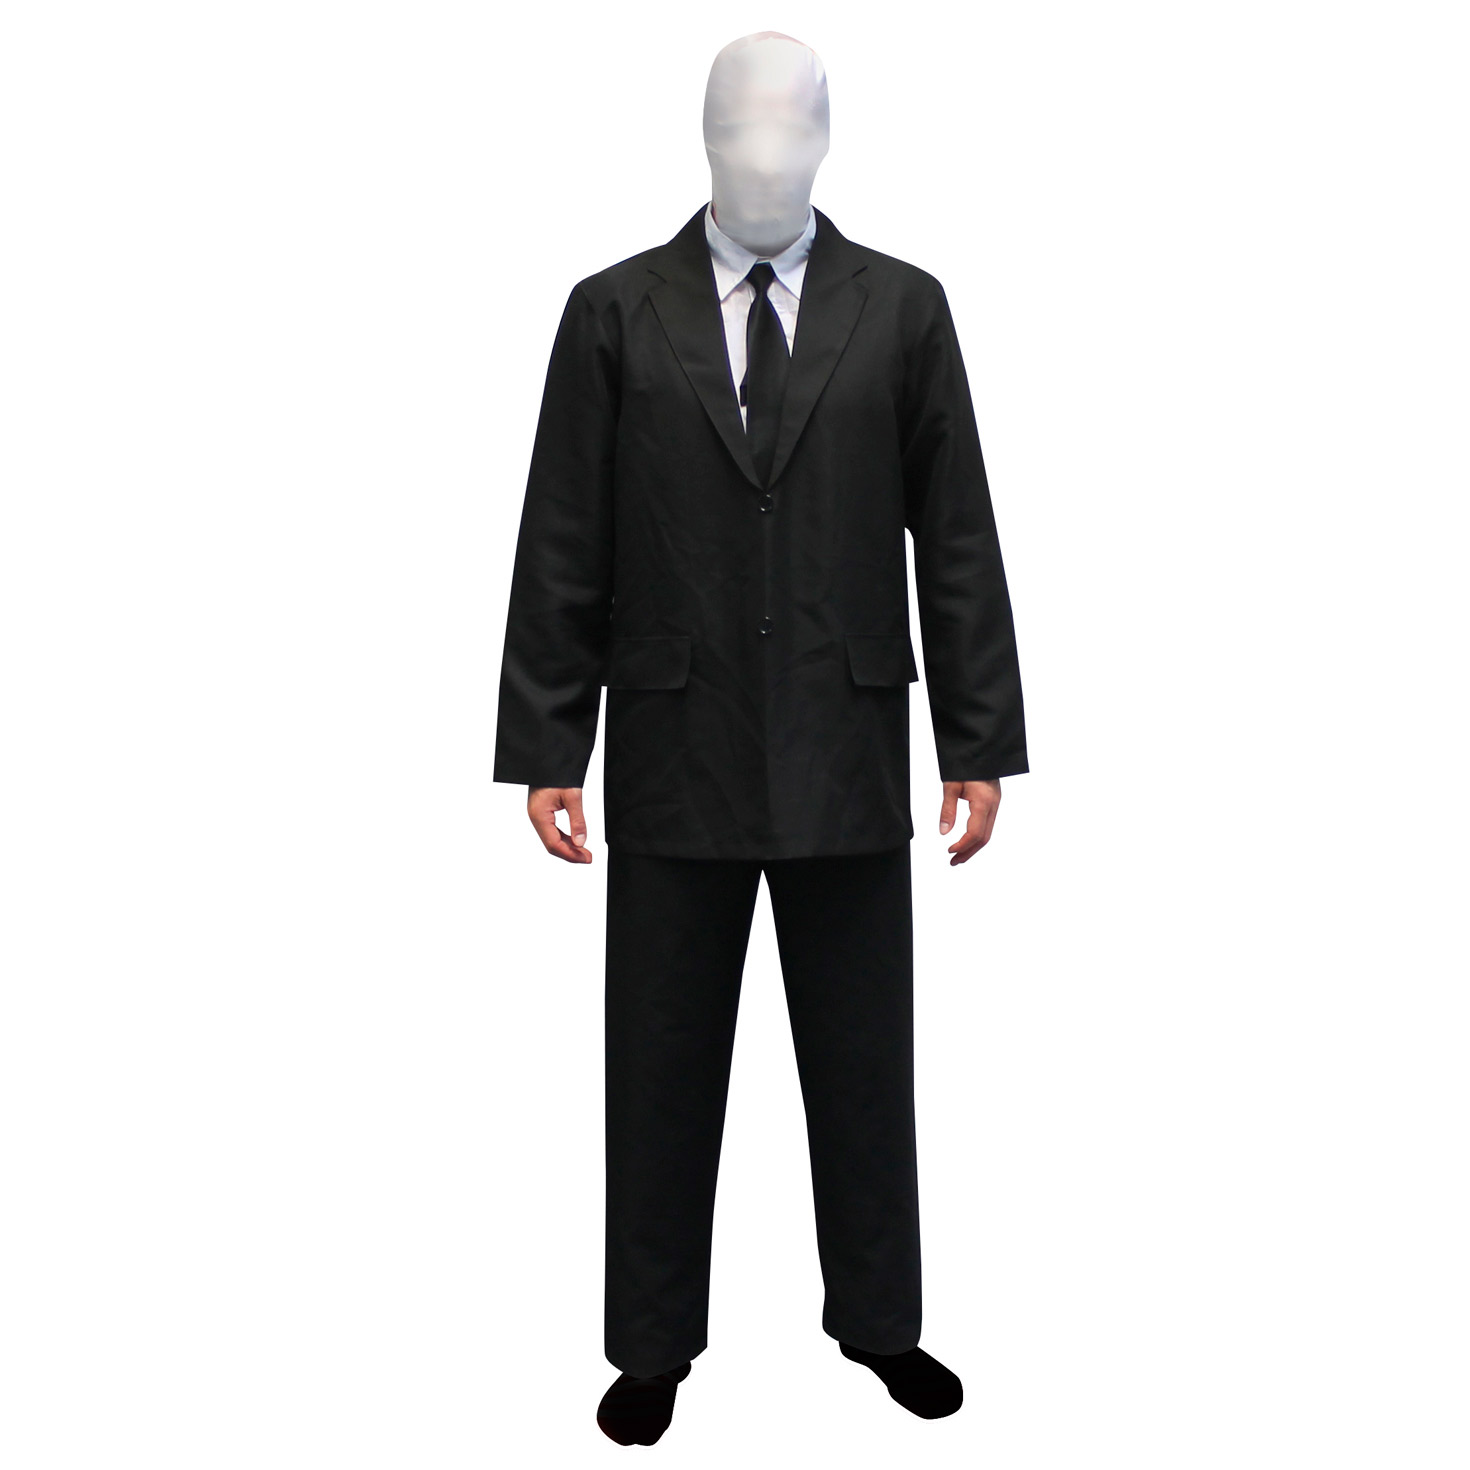 morphsuits scary slender man fancy dress costume slenderman for halloween - Halloween Costume Slender Man